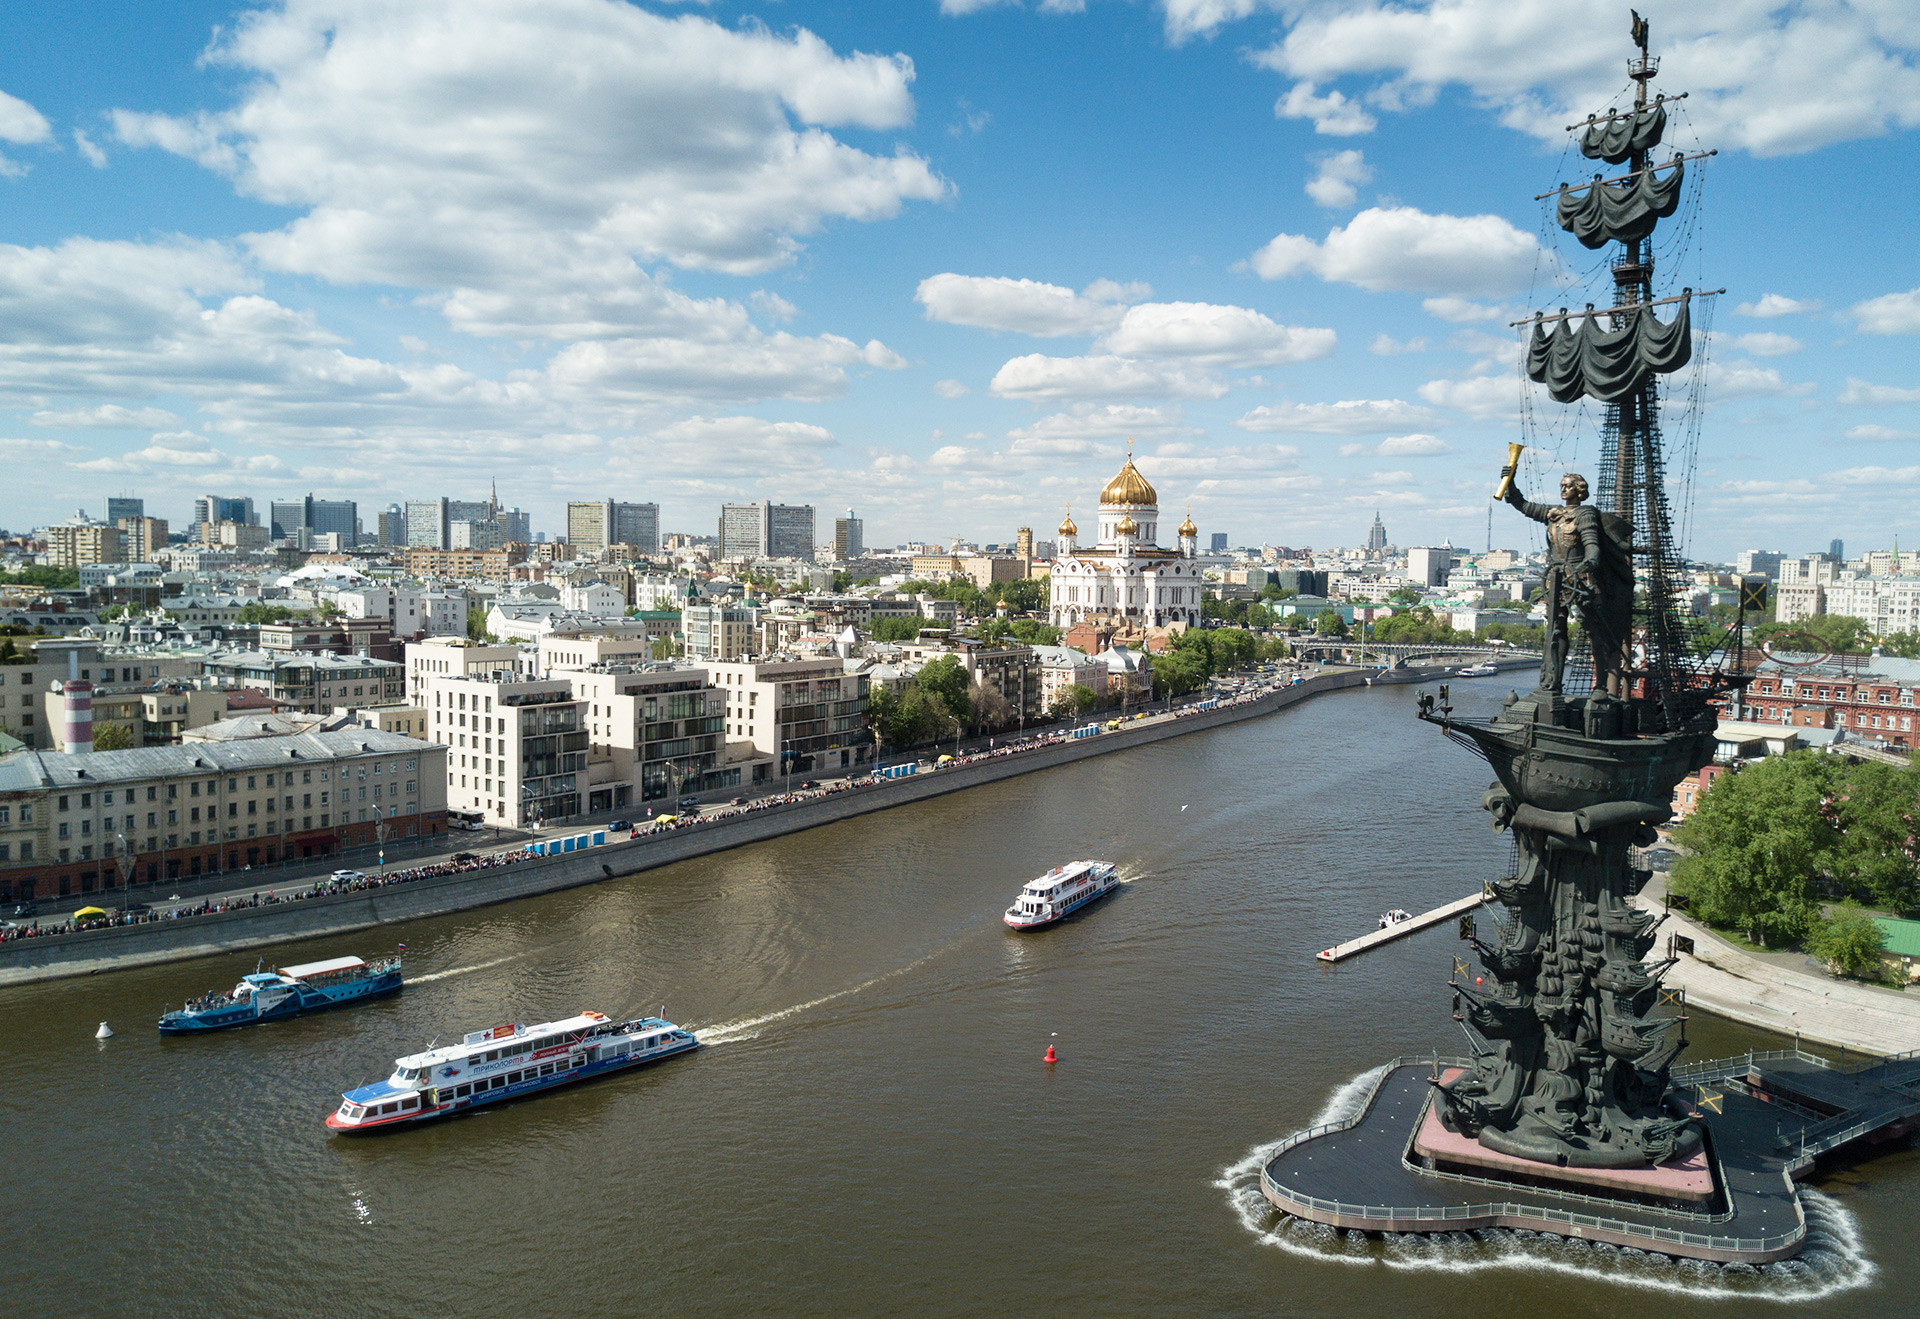 Tsereteli's most famous project is the 98-meter-high statue of Peter the Great on the banks of the Moscow River, about a mile from the Kremlin